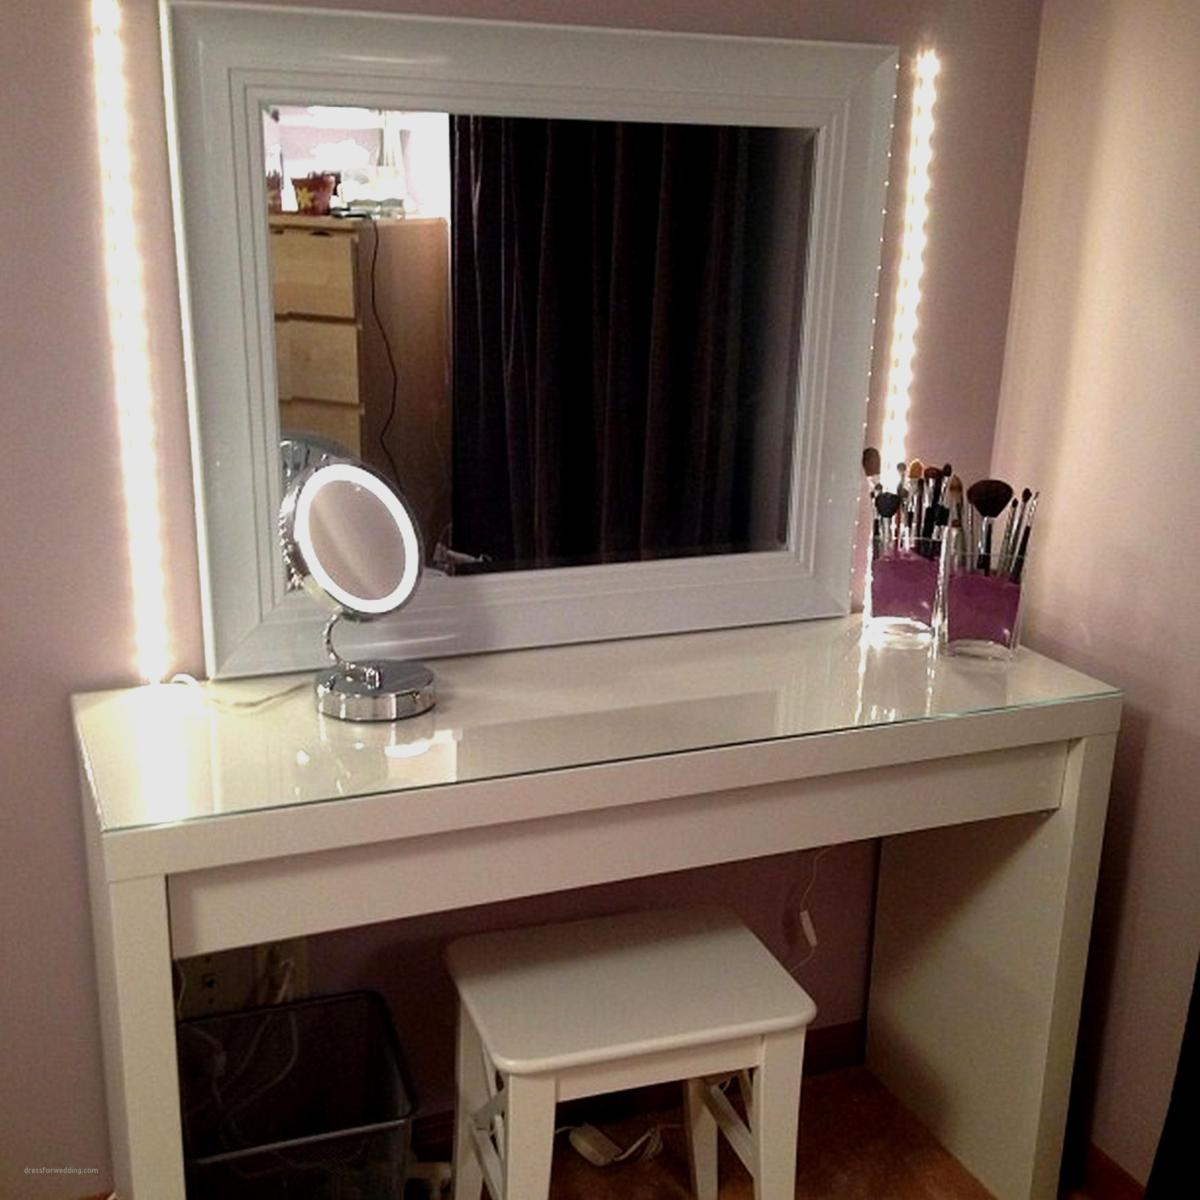 Bedroom Vanity Set With Lights Around Mirror 14 - Gongetech